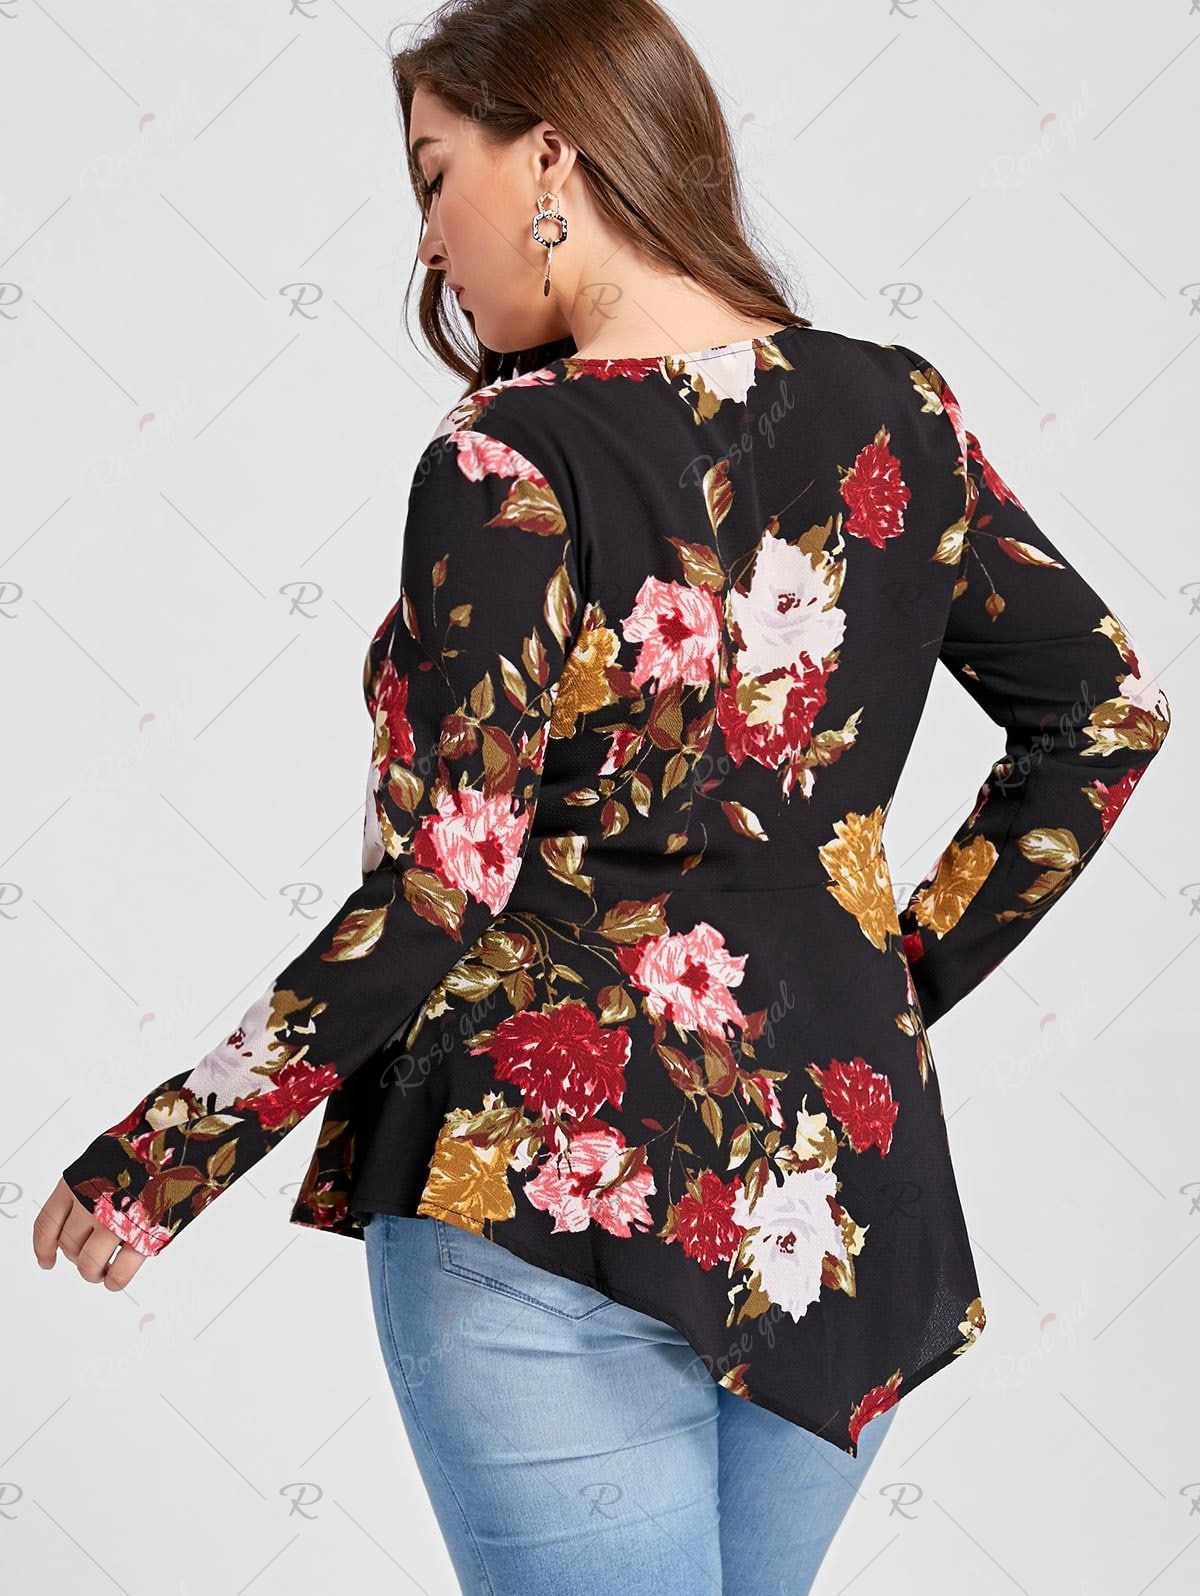 Diligent 2018 New 2xl Plus Size Women Casual Tops Loose Stand Collar Long Sleeve Solid Black Zipper Big Size Shirts Blouses Women's Clothing